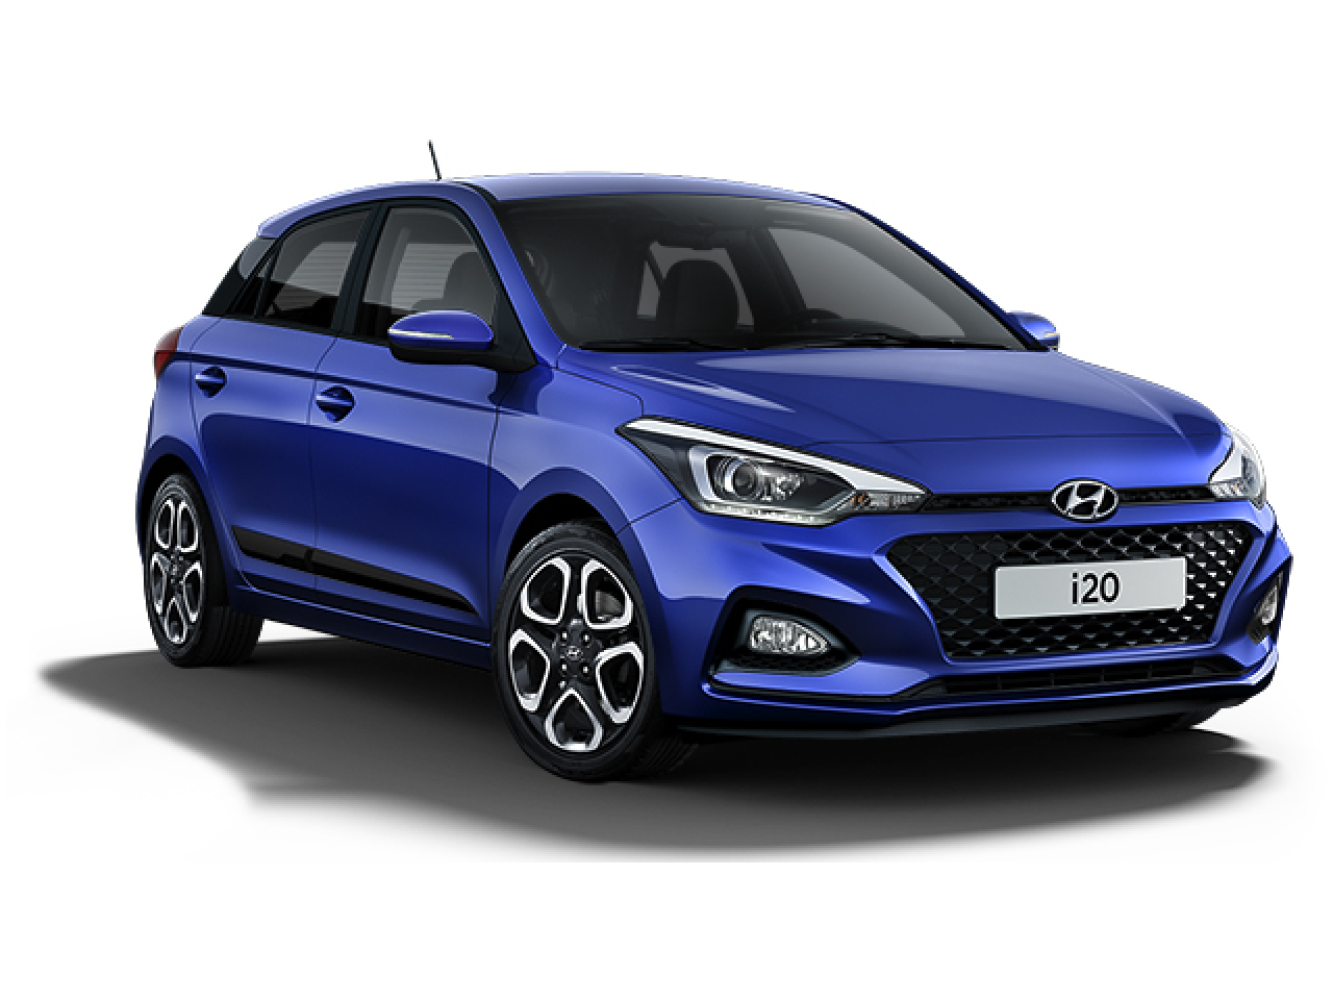 new hyundai i20 1 2 mpi premium nav 5dr petrol hatchback. Black Bedroom Furniture Sets. Home Design Ideas